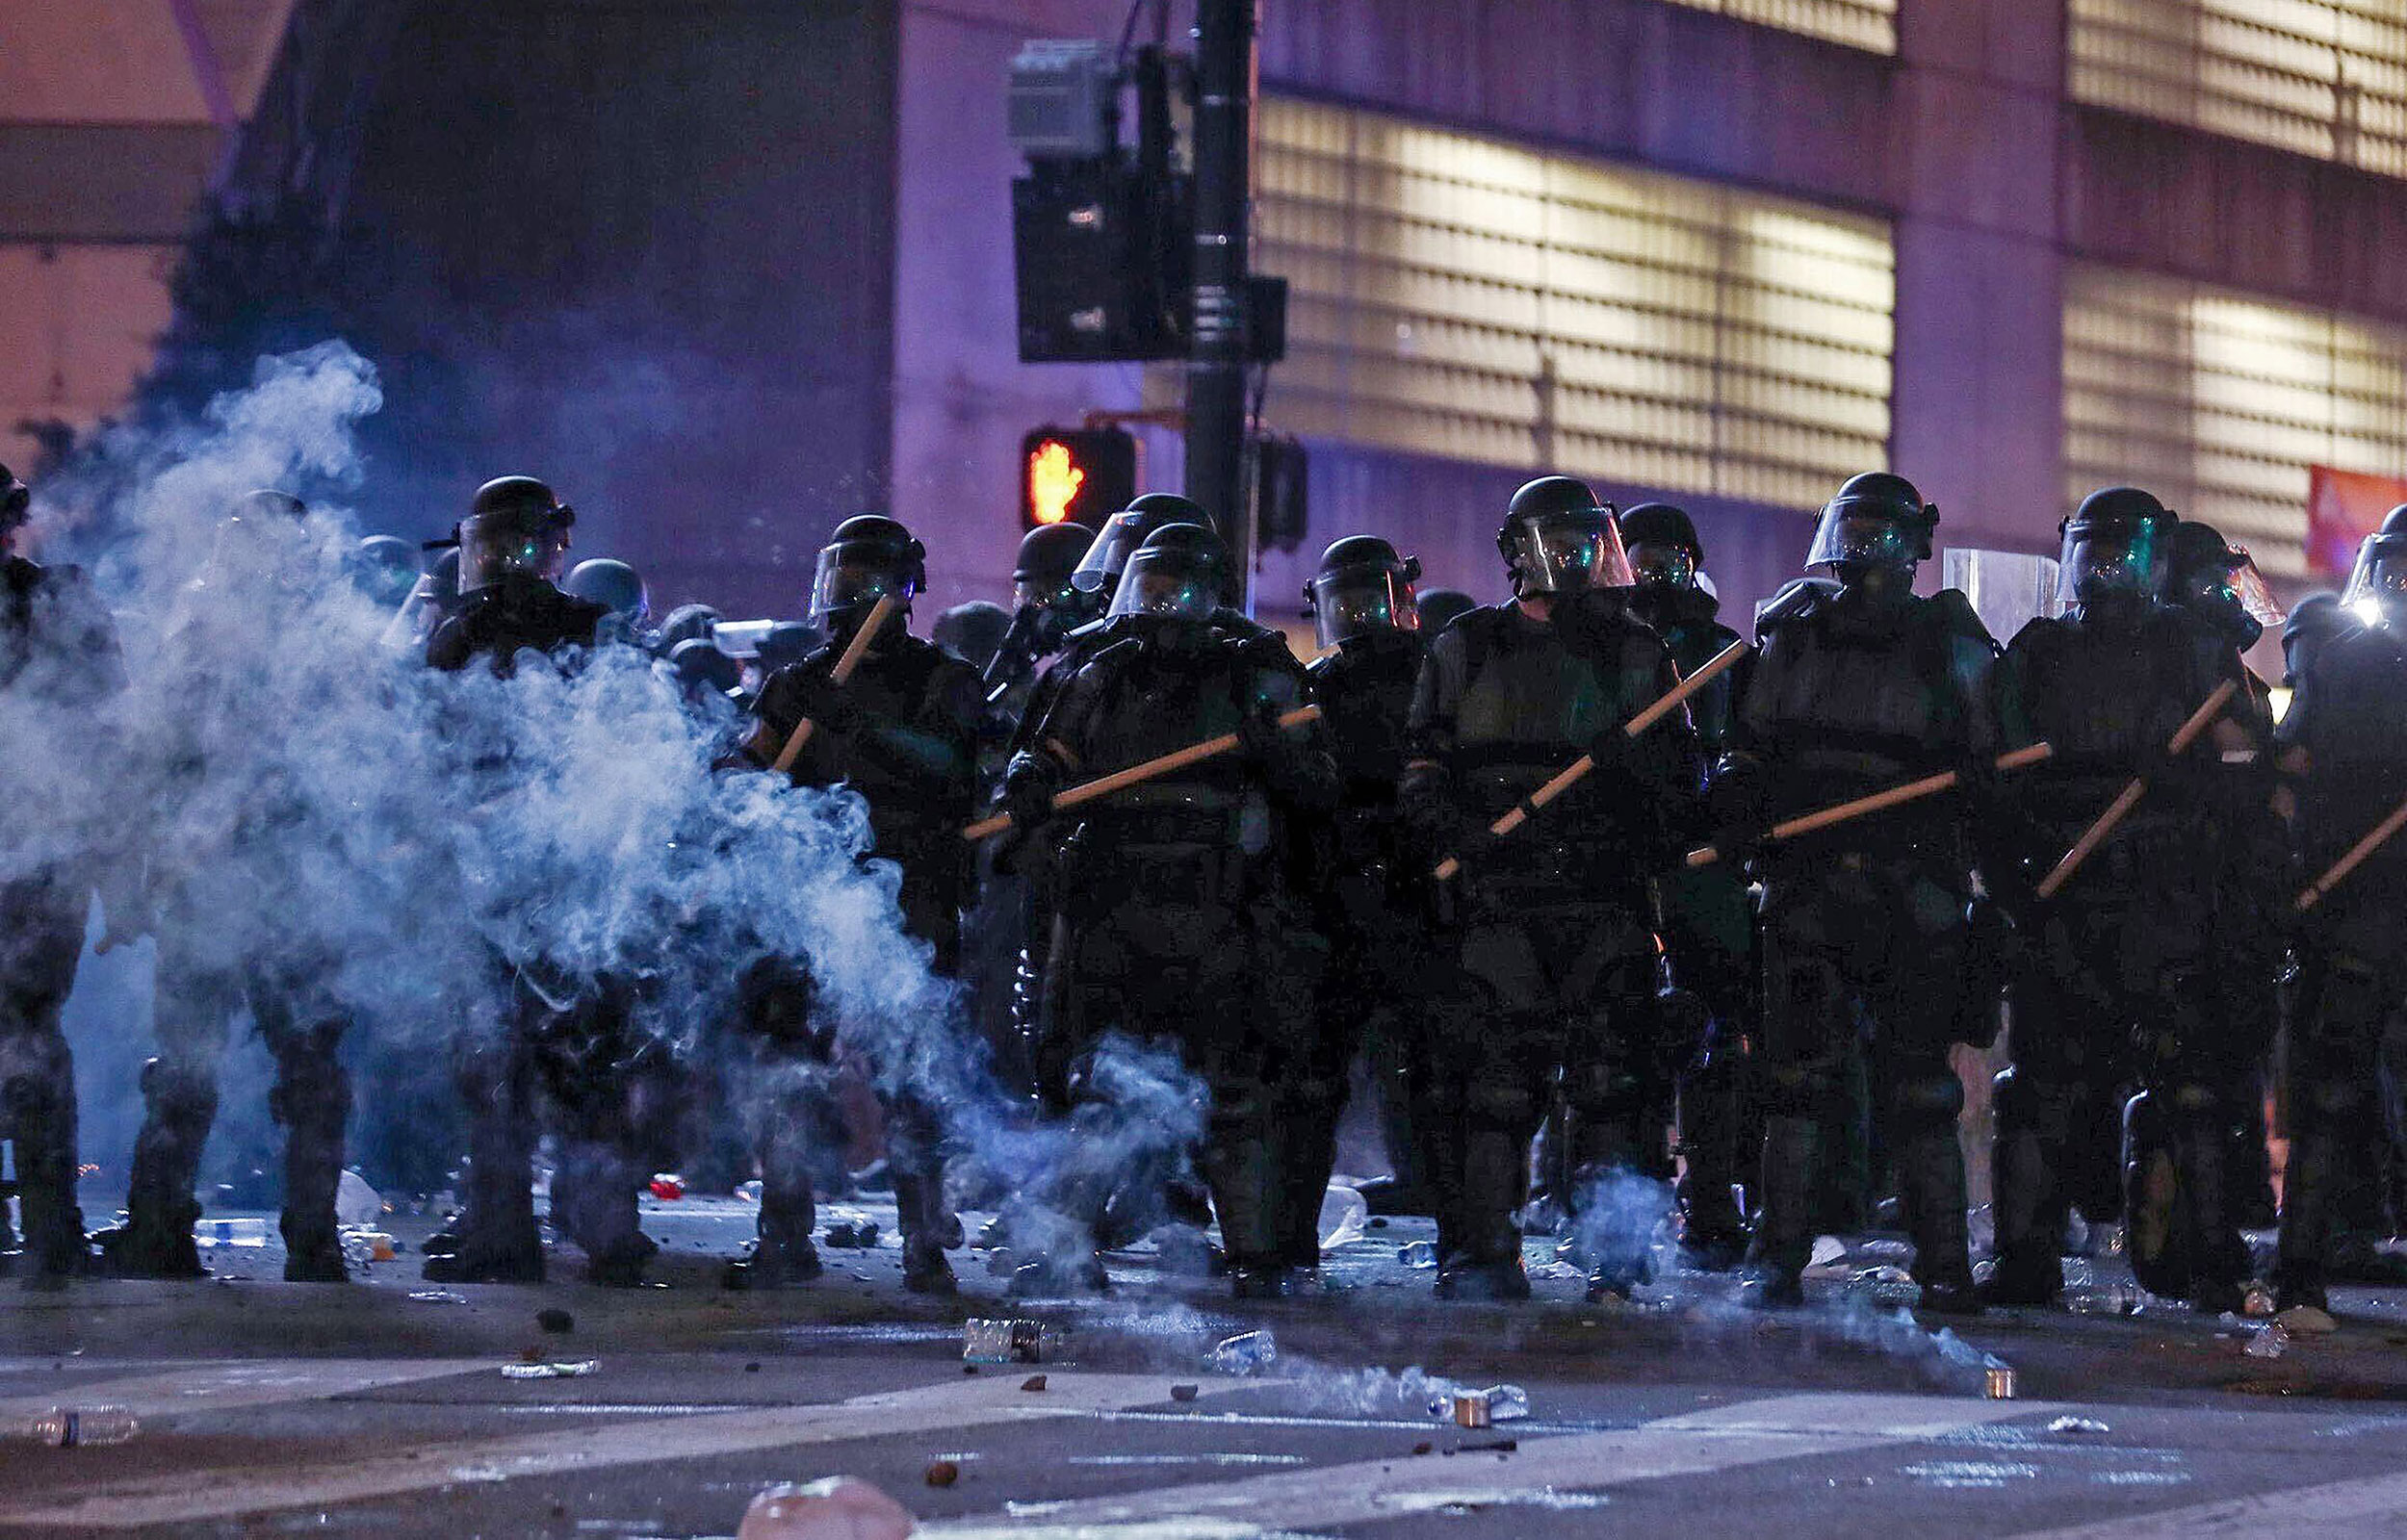 What we do and don't know about the extremists taking part in riots across the US